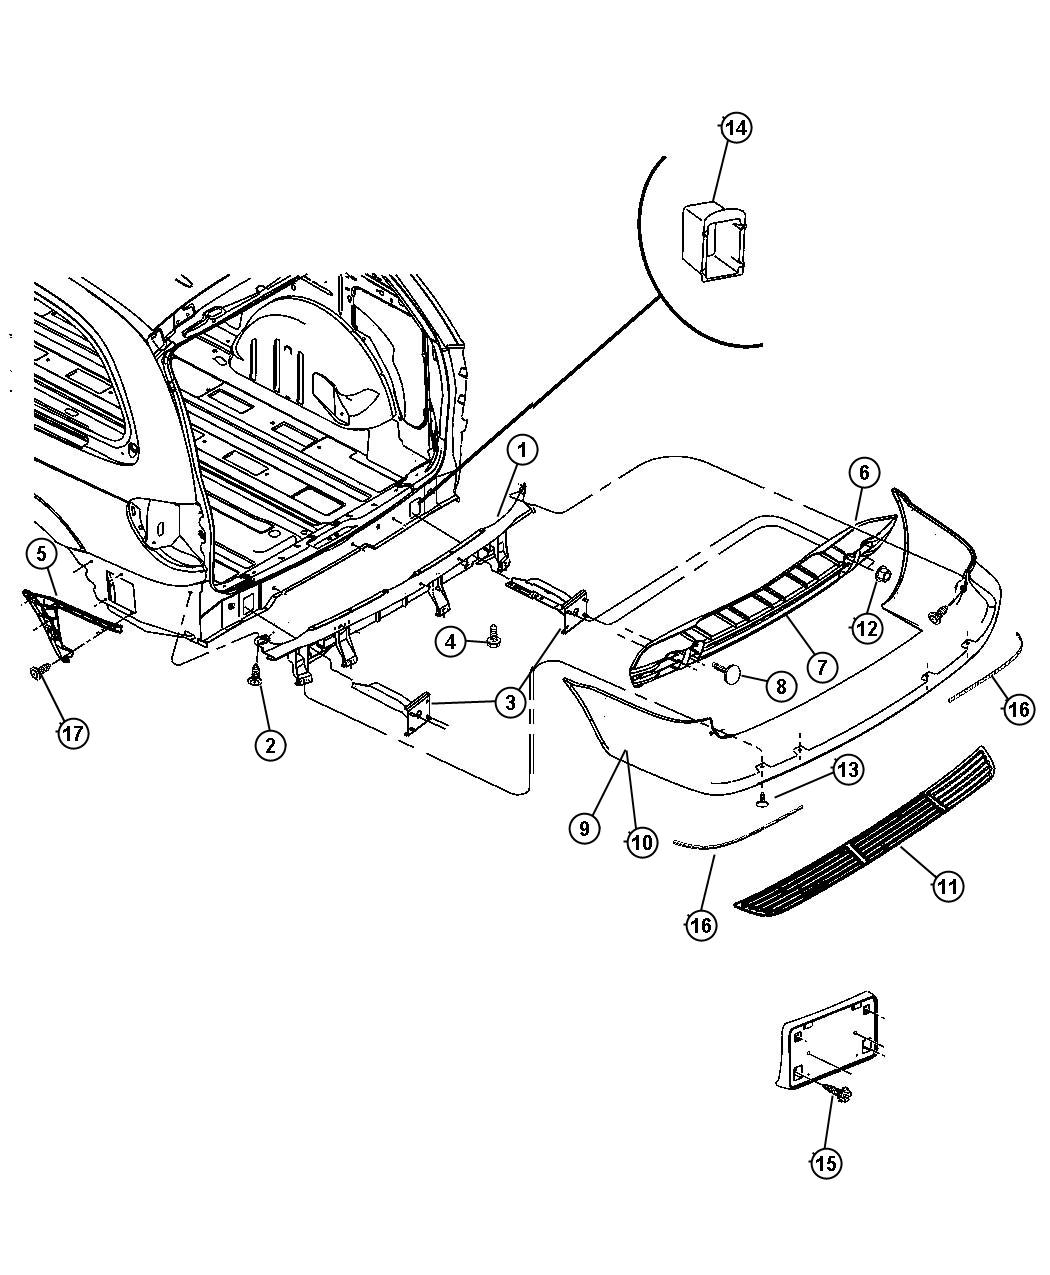 2012 Toyota Highlander Liftgate Parts Diagram. Toyota